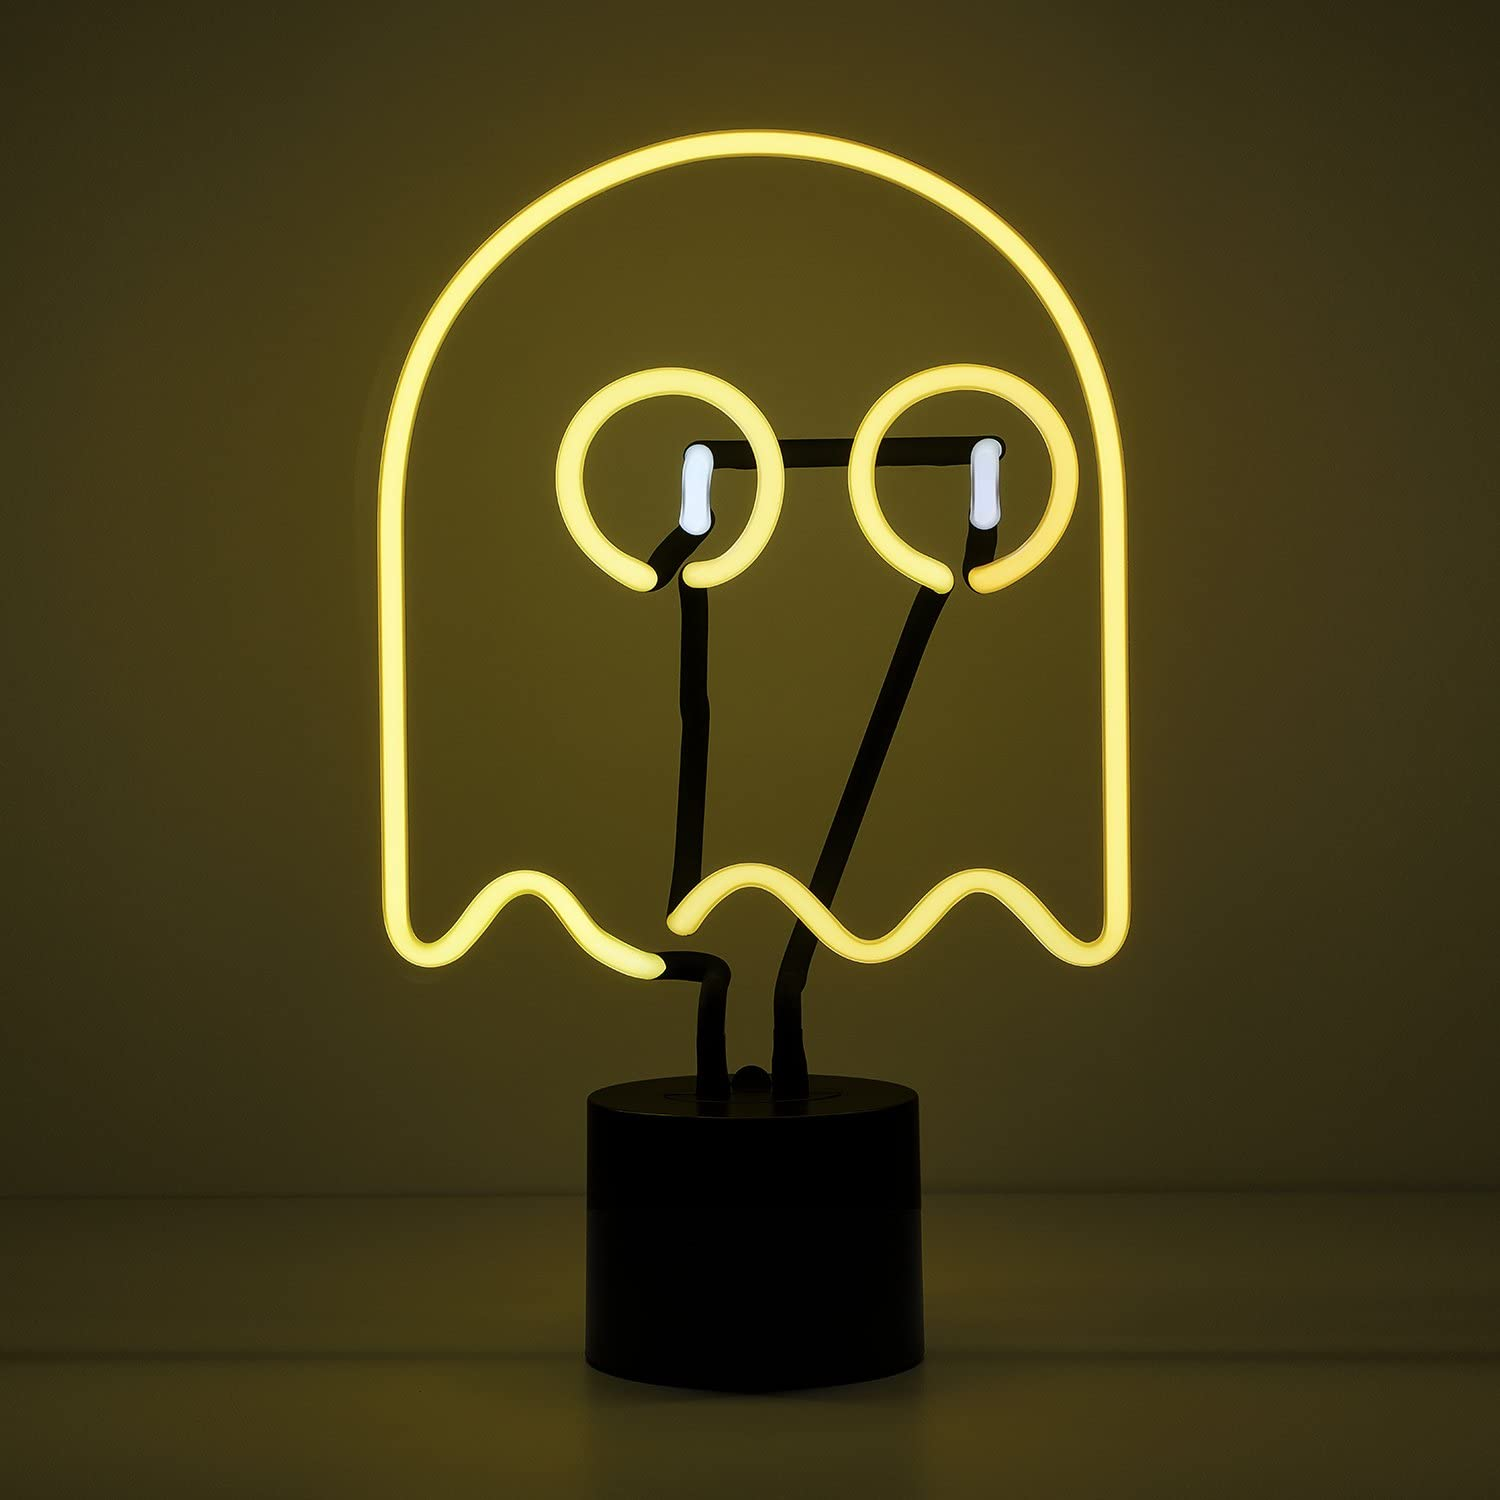 Amped & Co Neon Ghost Desk Light, Real Neon, Yellow and White, Large 14 x 9 inches, Home Decor Neon Signs for Unique Rooms